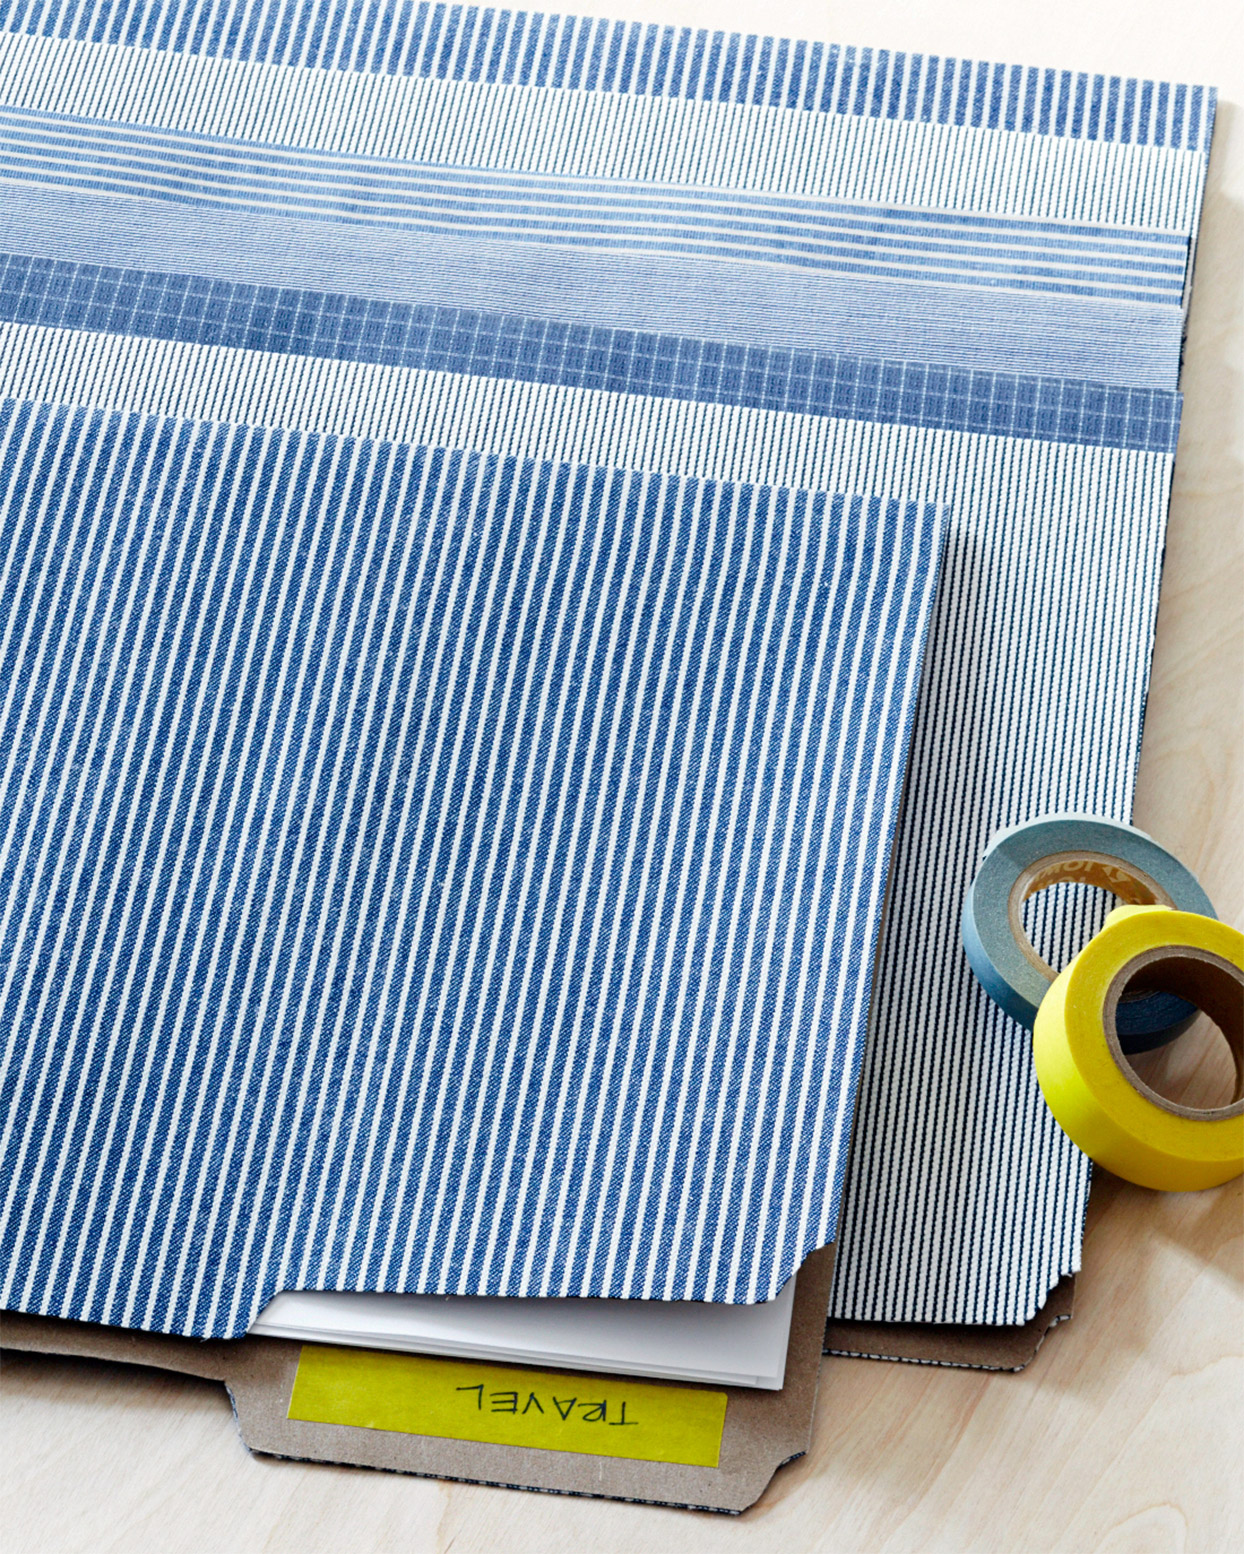 blue striped fabric-covered folders